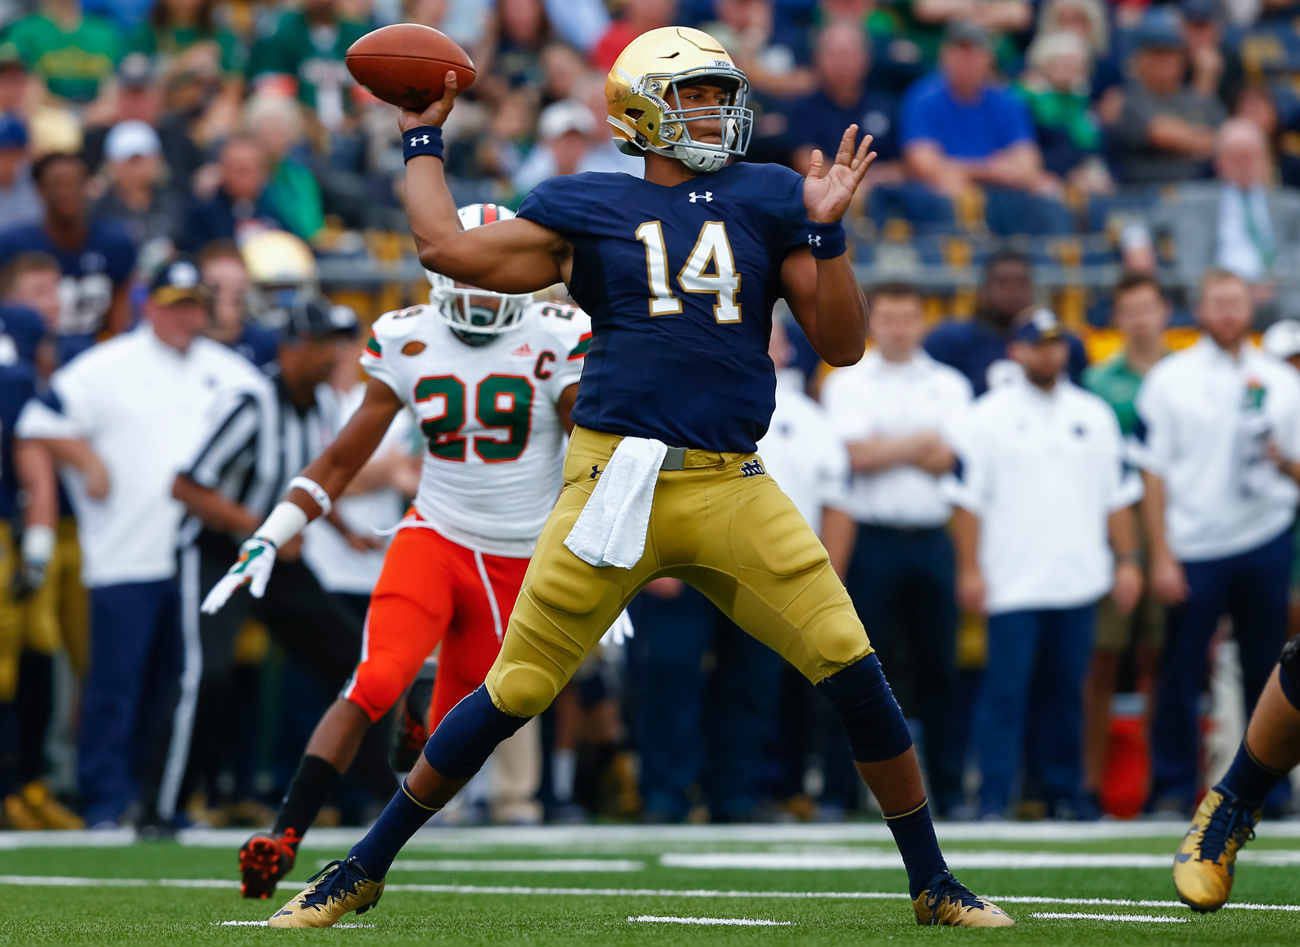 Some scouts believe it will take Notre Dame's DeShone Kizer a couple years to transition into an NFL-ready quarterback.